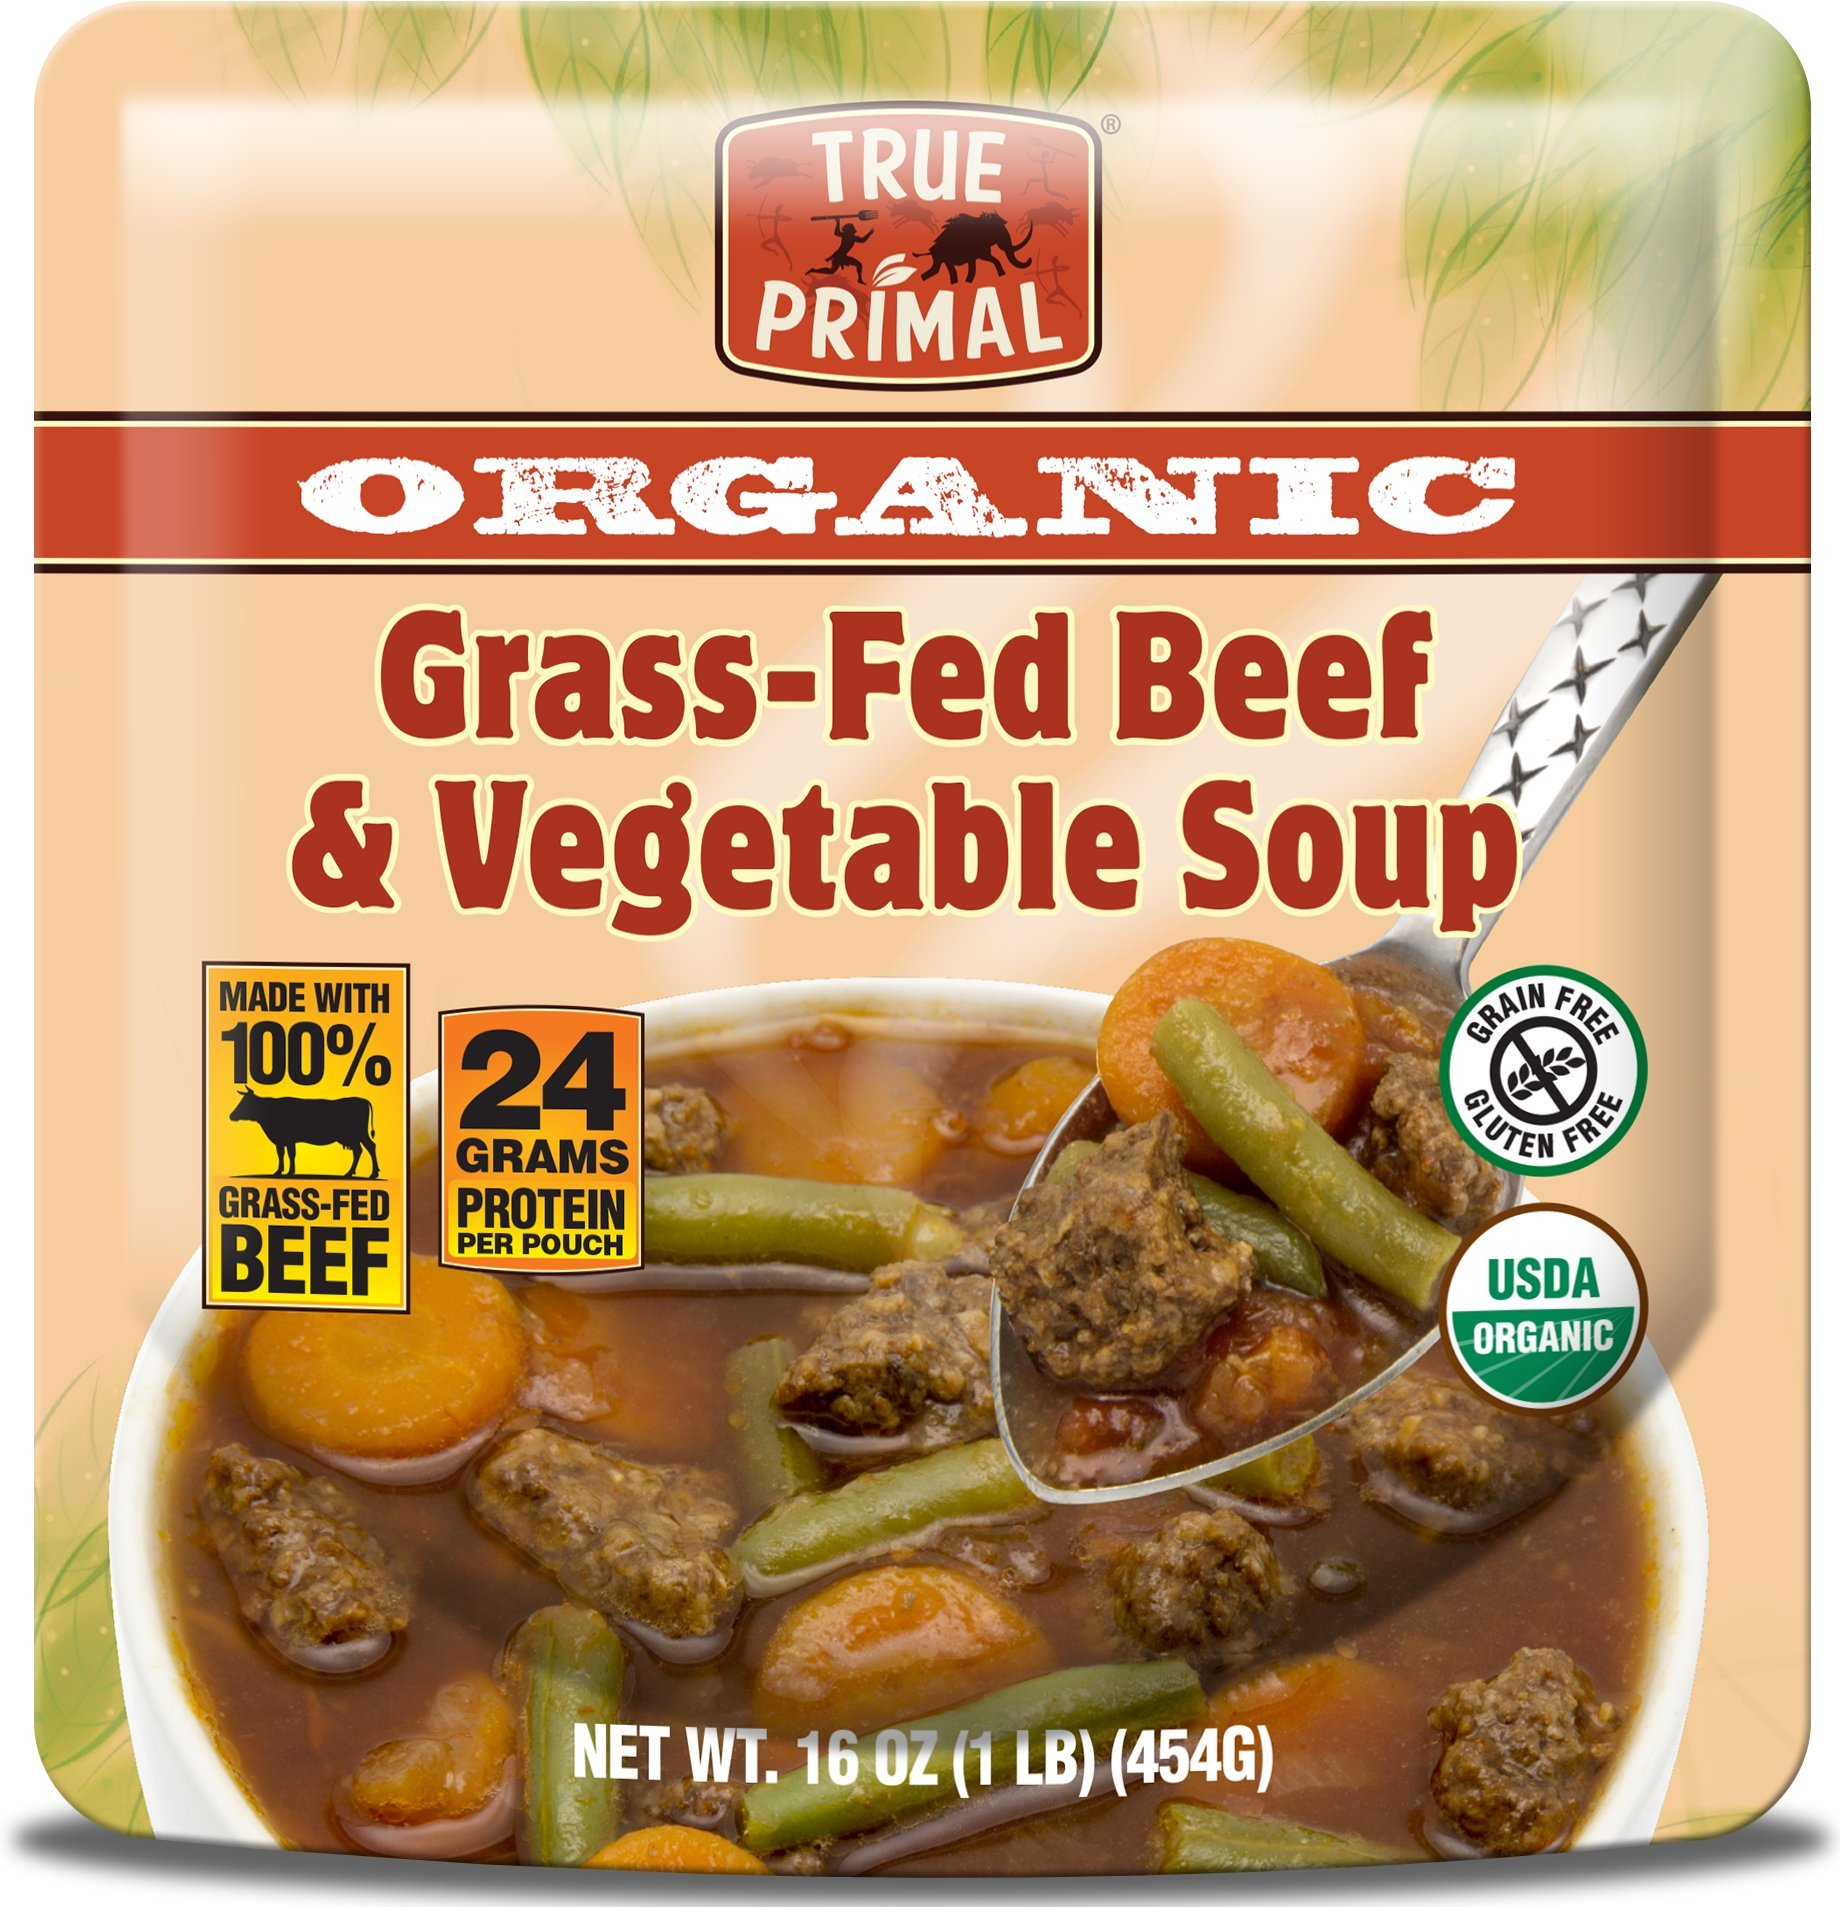 True Primal Organic Grass-Fed Beef & Vegetable Soup (Paleo, Gluten-free, Grain-free, Microwavable) 10-pack